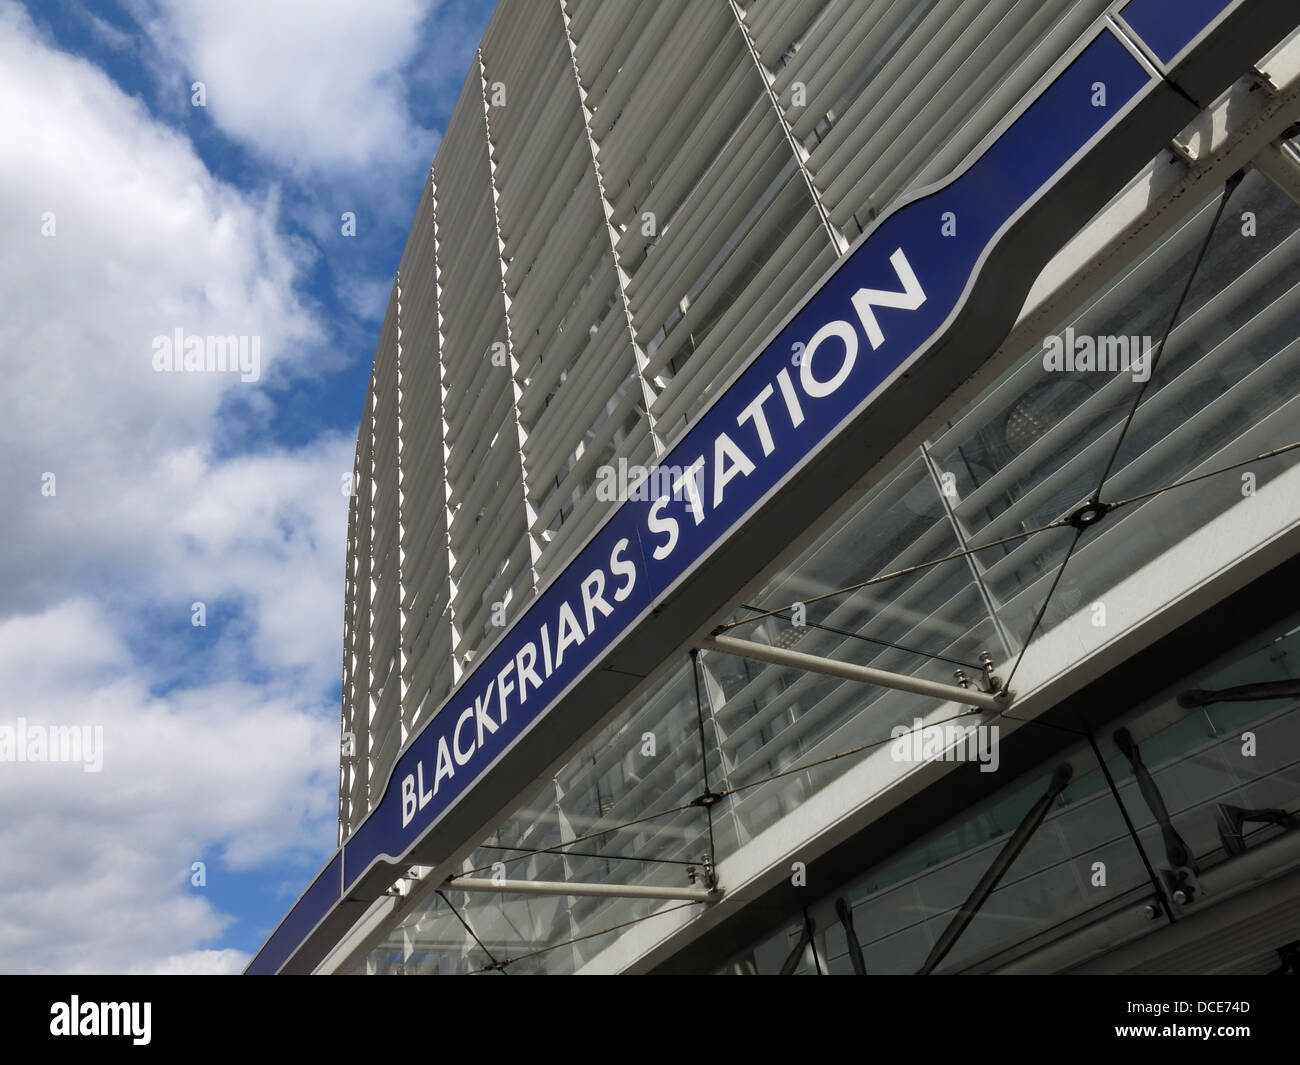 London Blackfriars modern new entrance after renovation 2013 for the Thameslink project - Stock Image